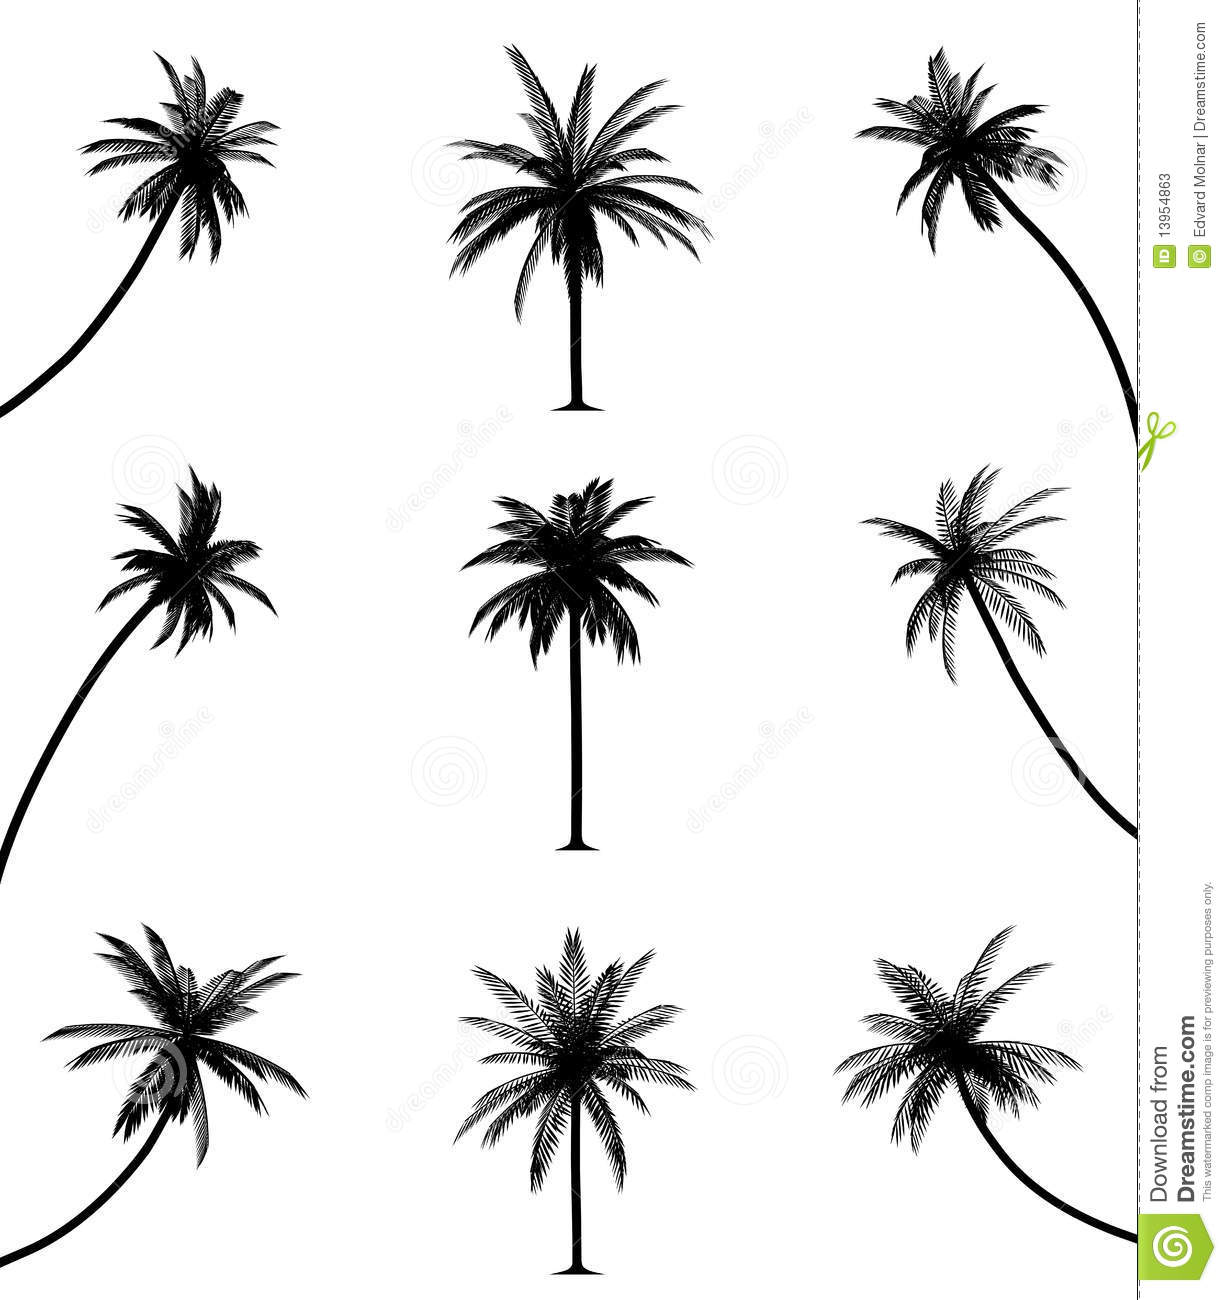 Palm Trees Stock Photos - Image: 13954863 - photo#36